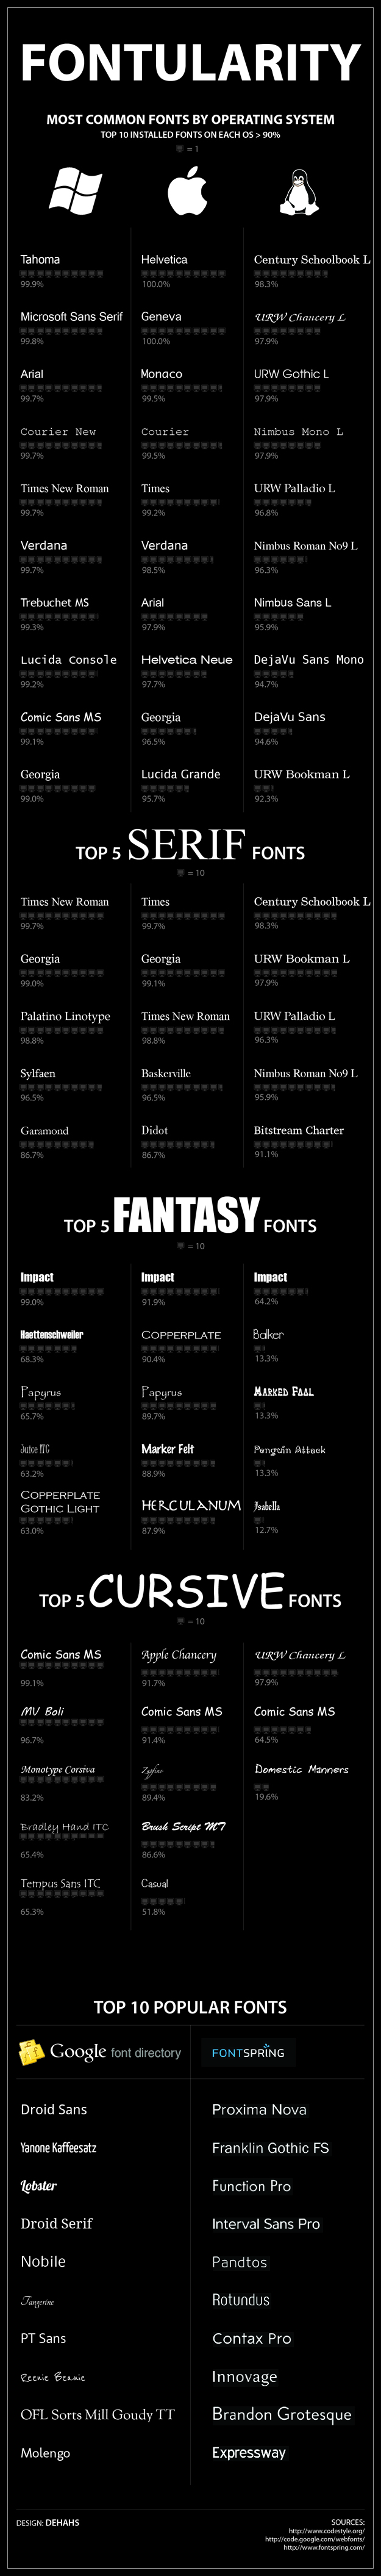 Top Fonts Listed In Categories